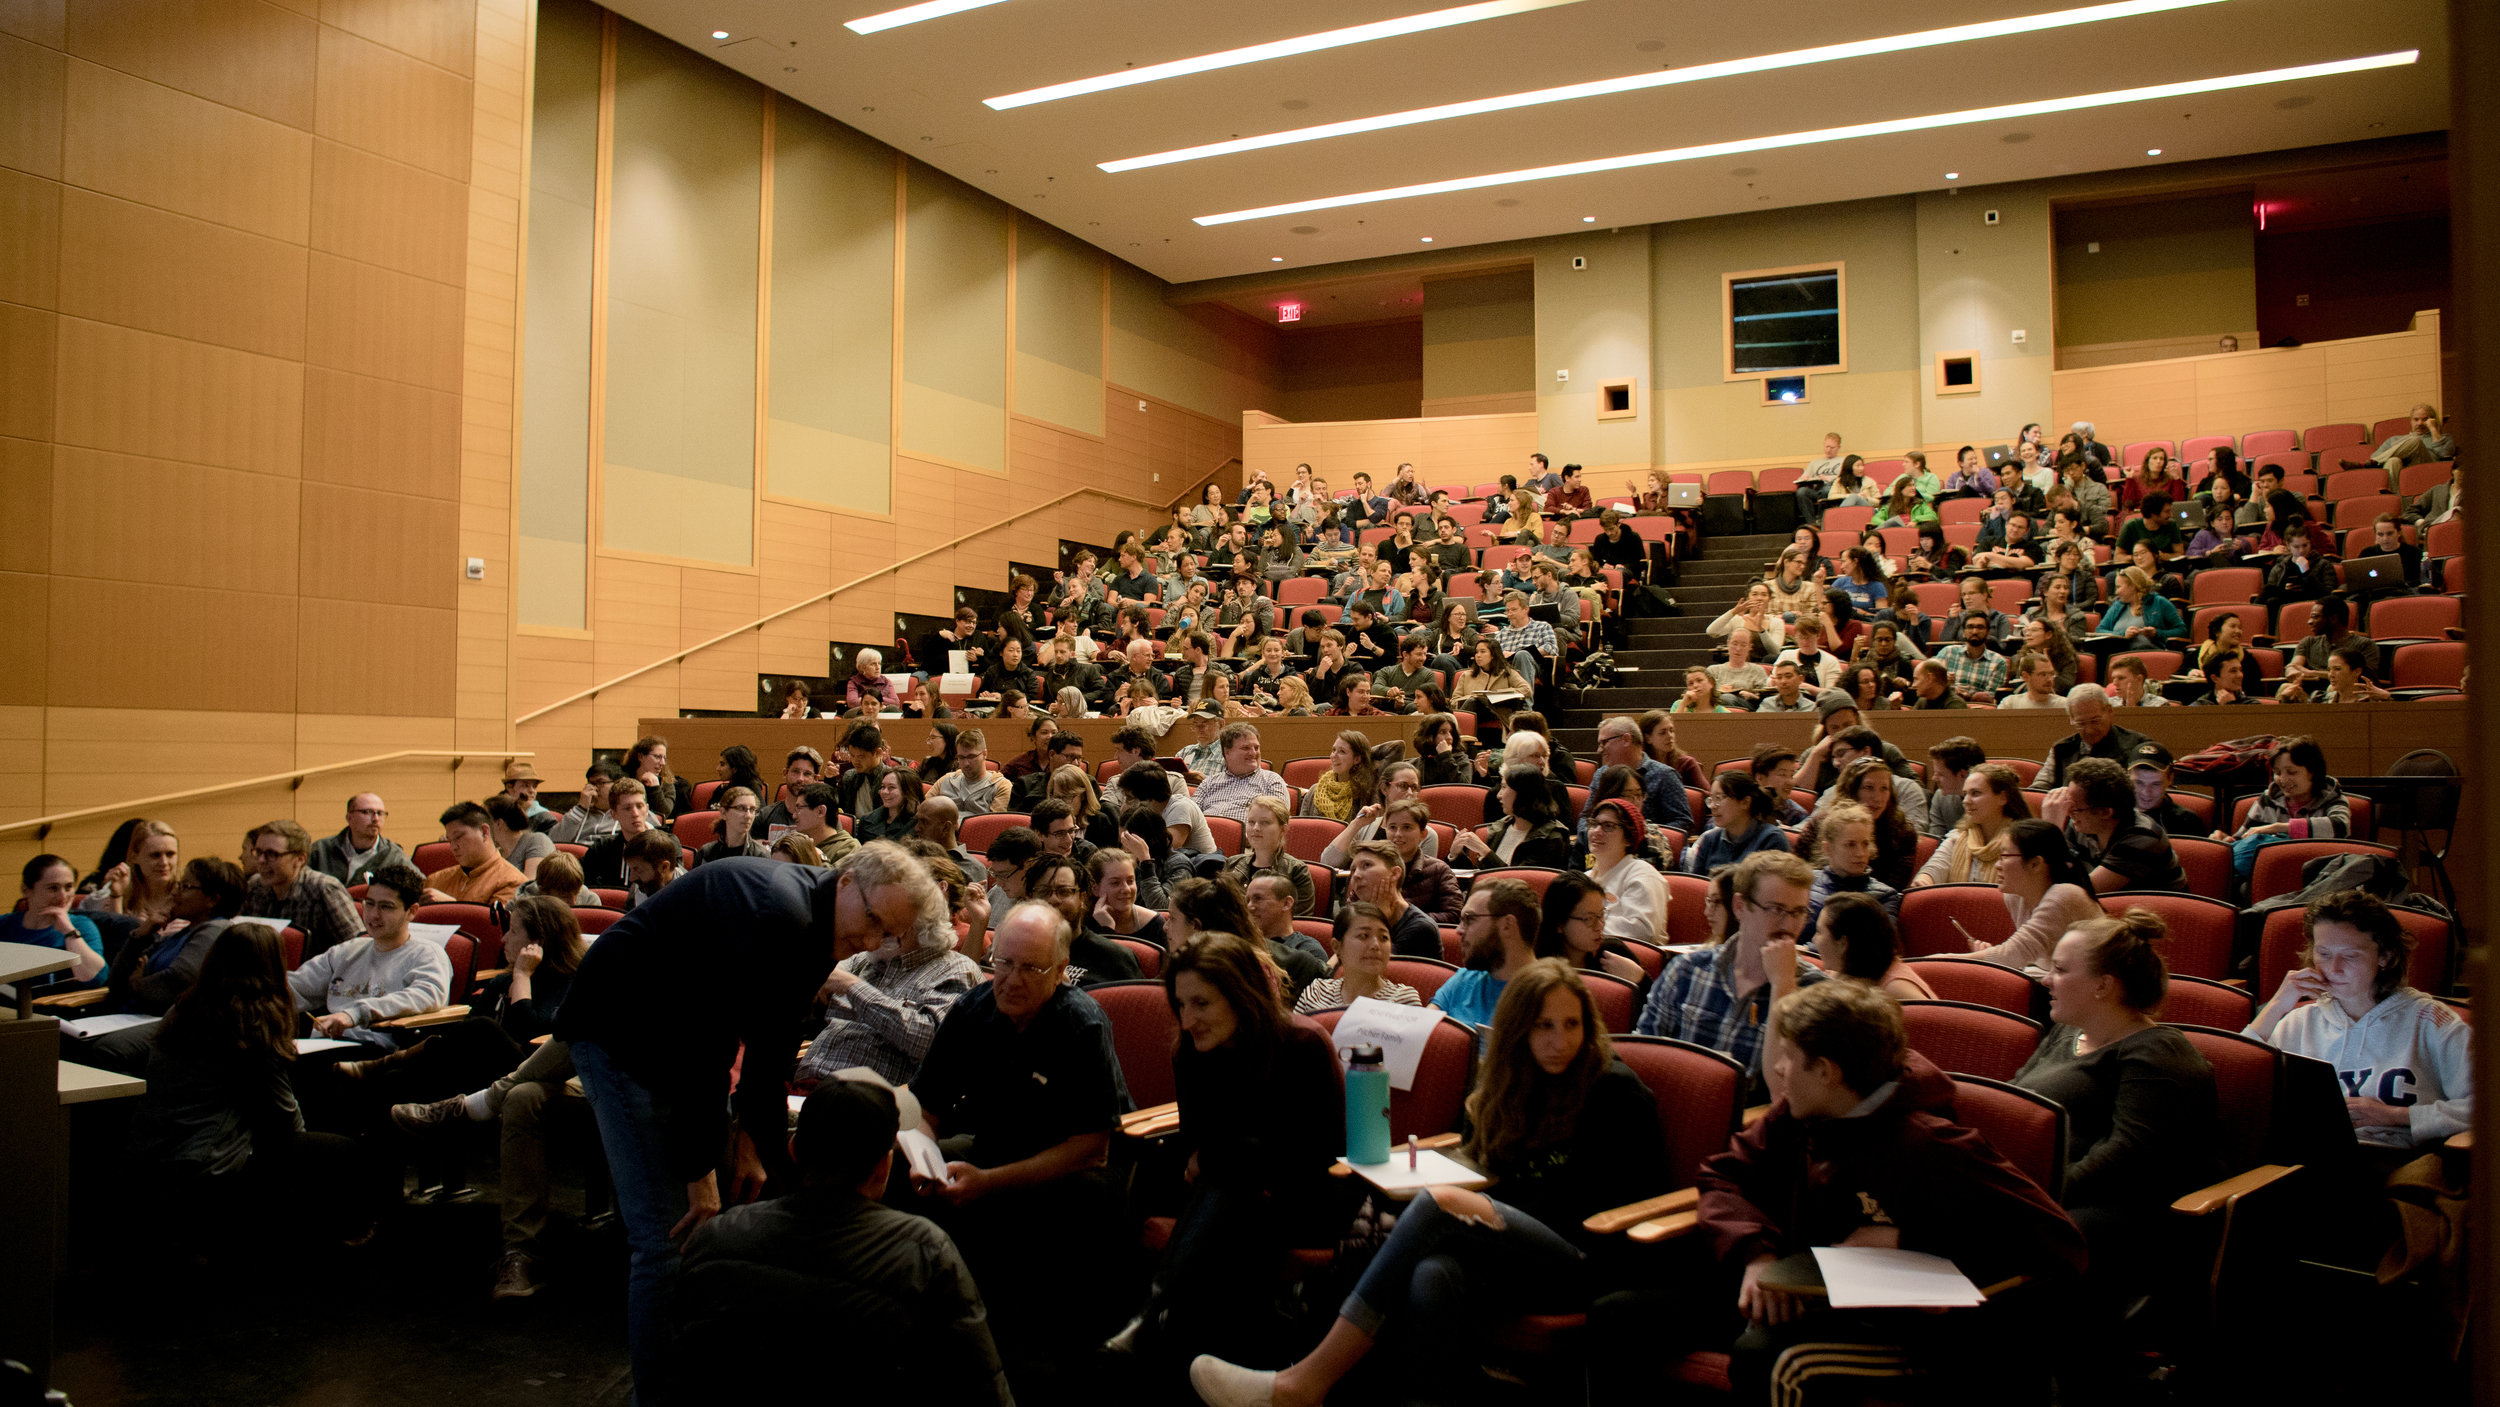 Over 250 participants engaged in small group and whole-audience discussions at a visual storytelling workshop at UC Berkeley in March 2018. Photo courtesy of Helina Chin, UC Museum of Paleontology.